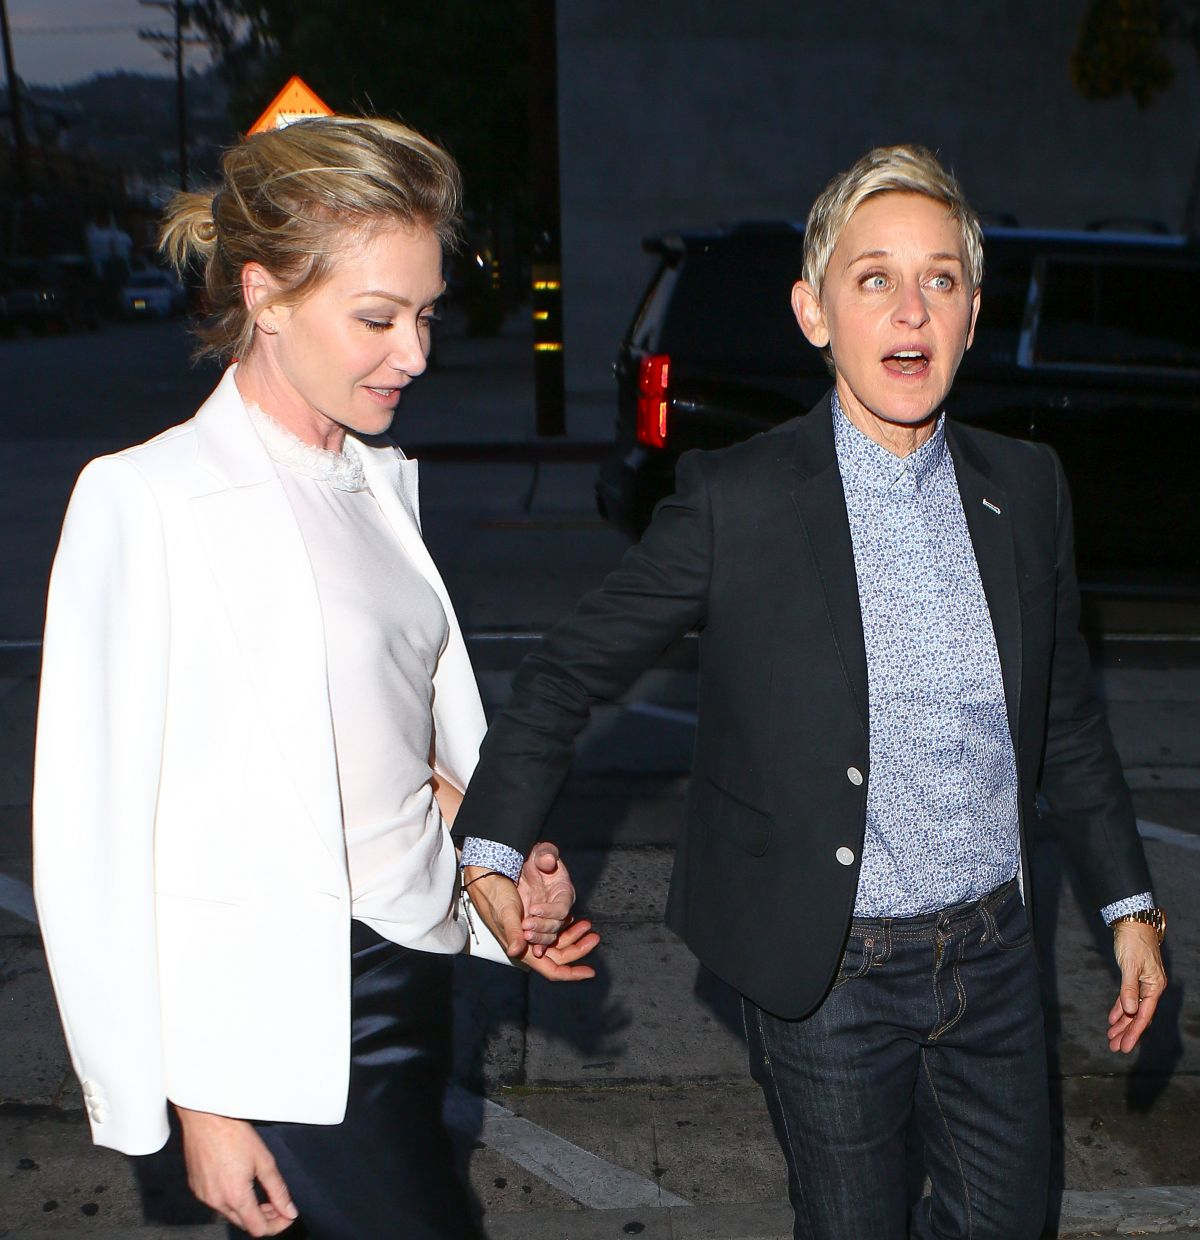 ELLEN DEGENERES and PORTIA DE ROSSI at Craig